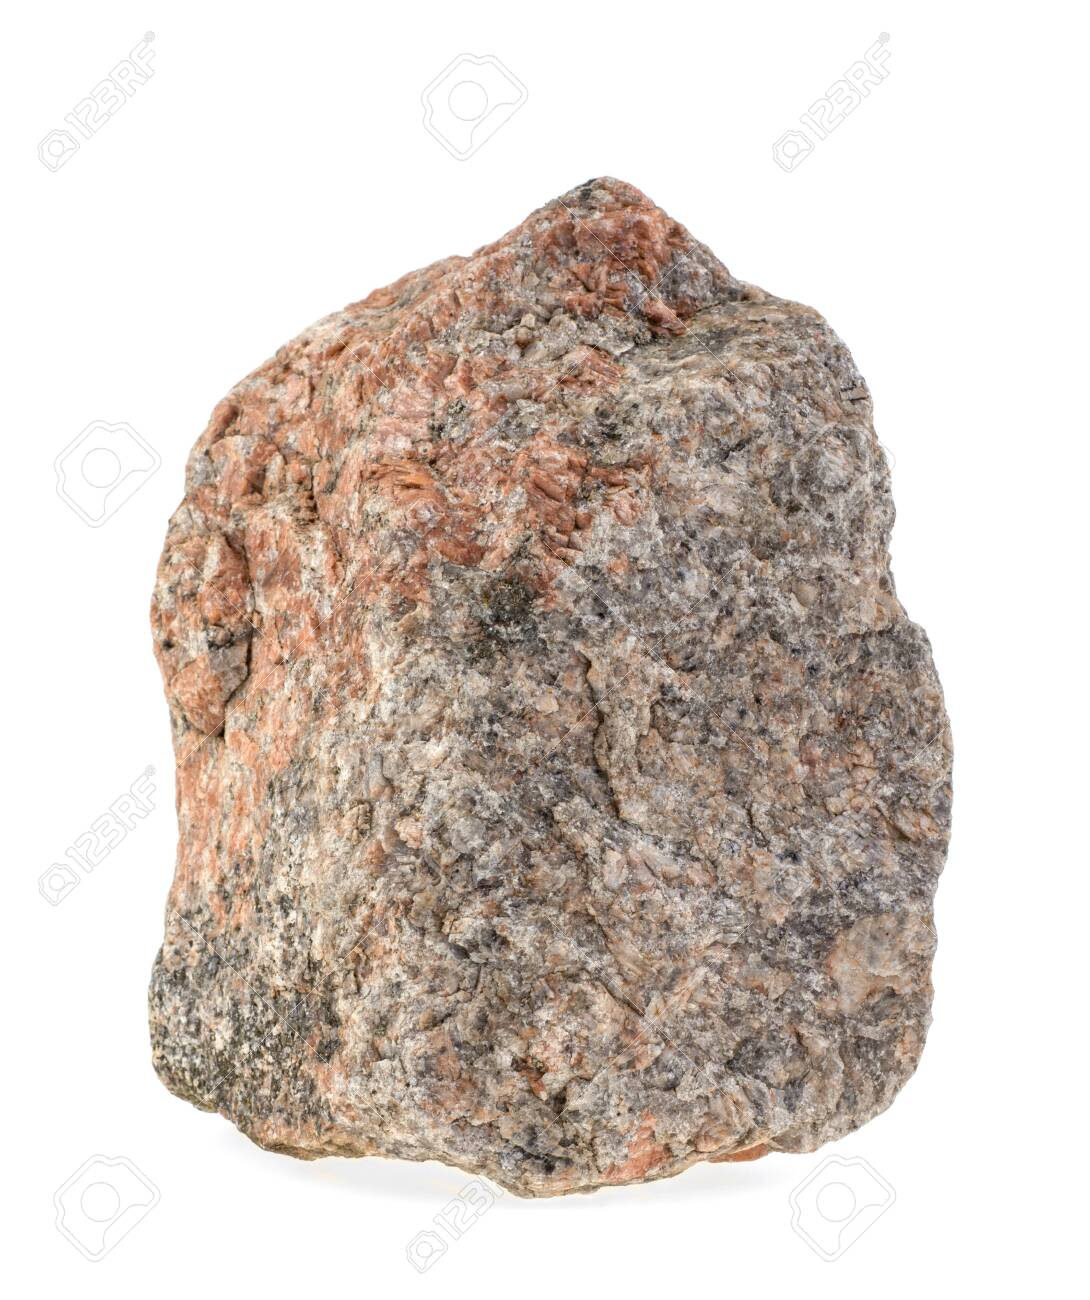 Natural granite stone on a white background, isolated. - 148697258